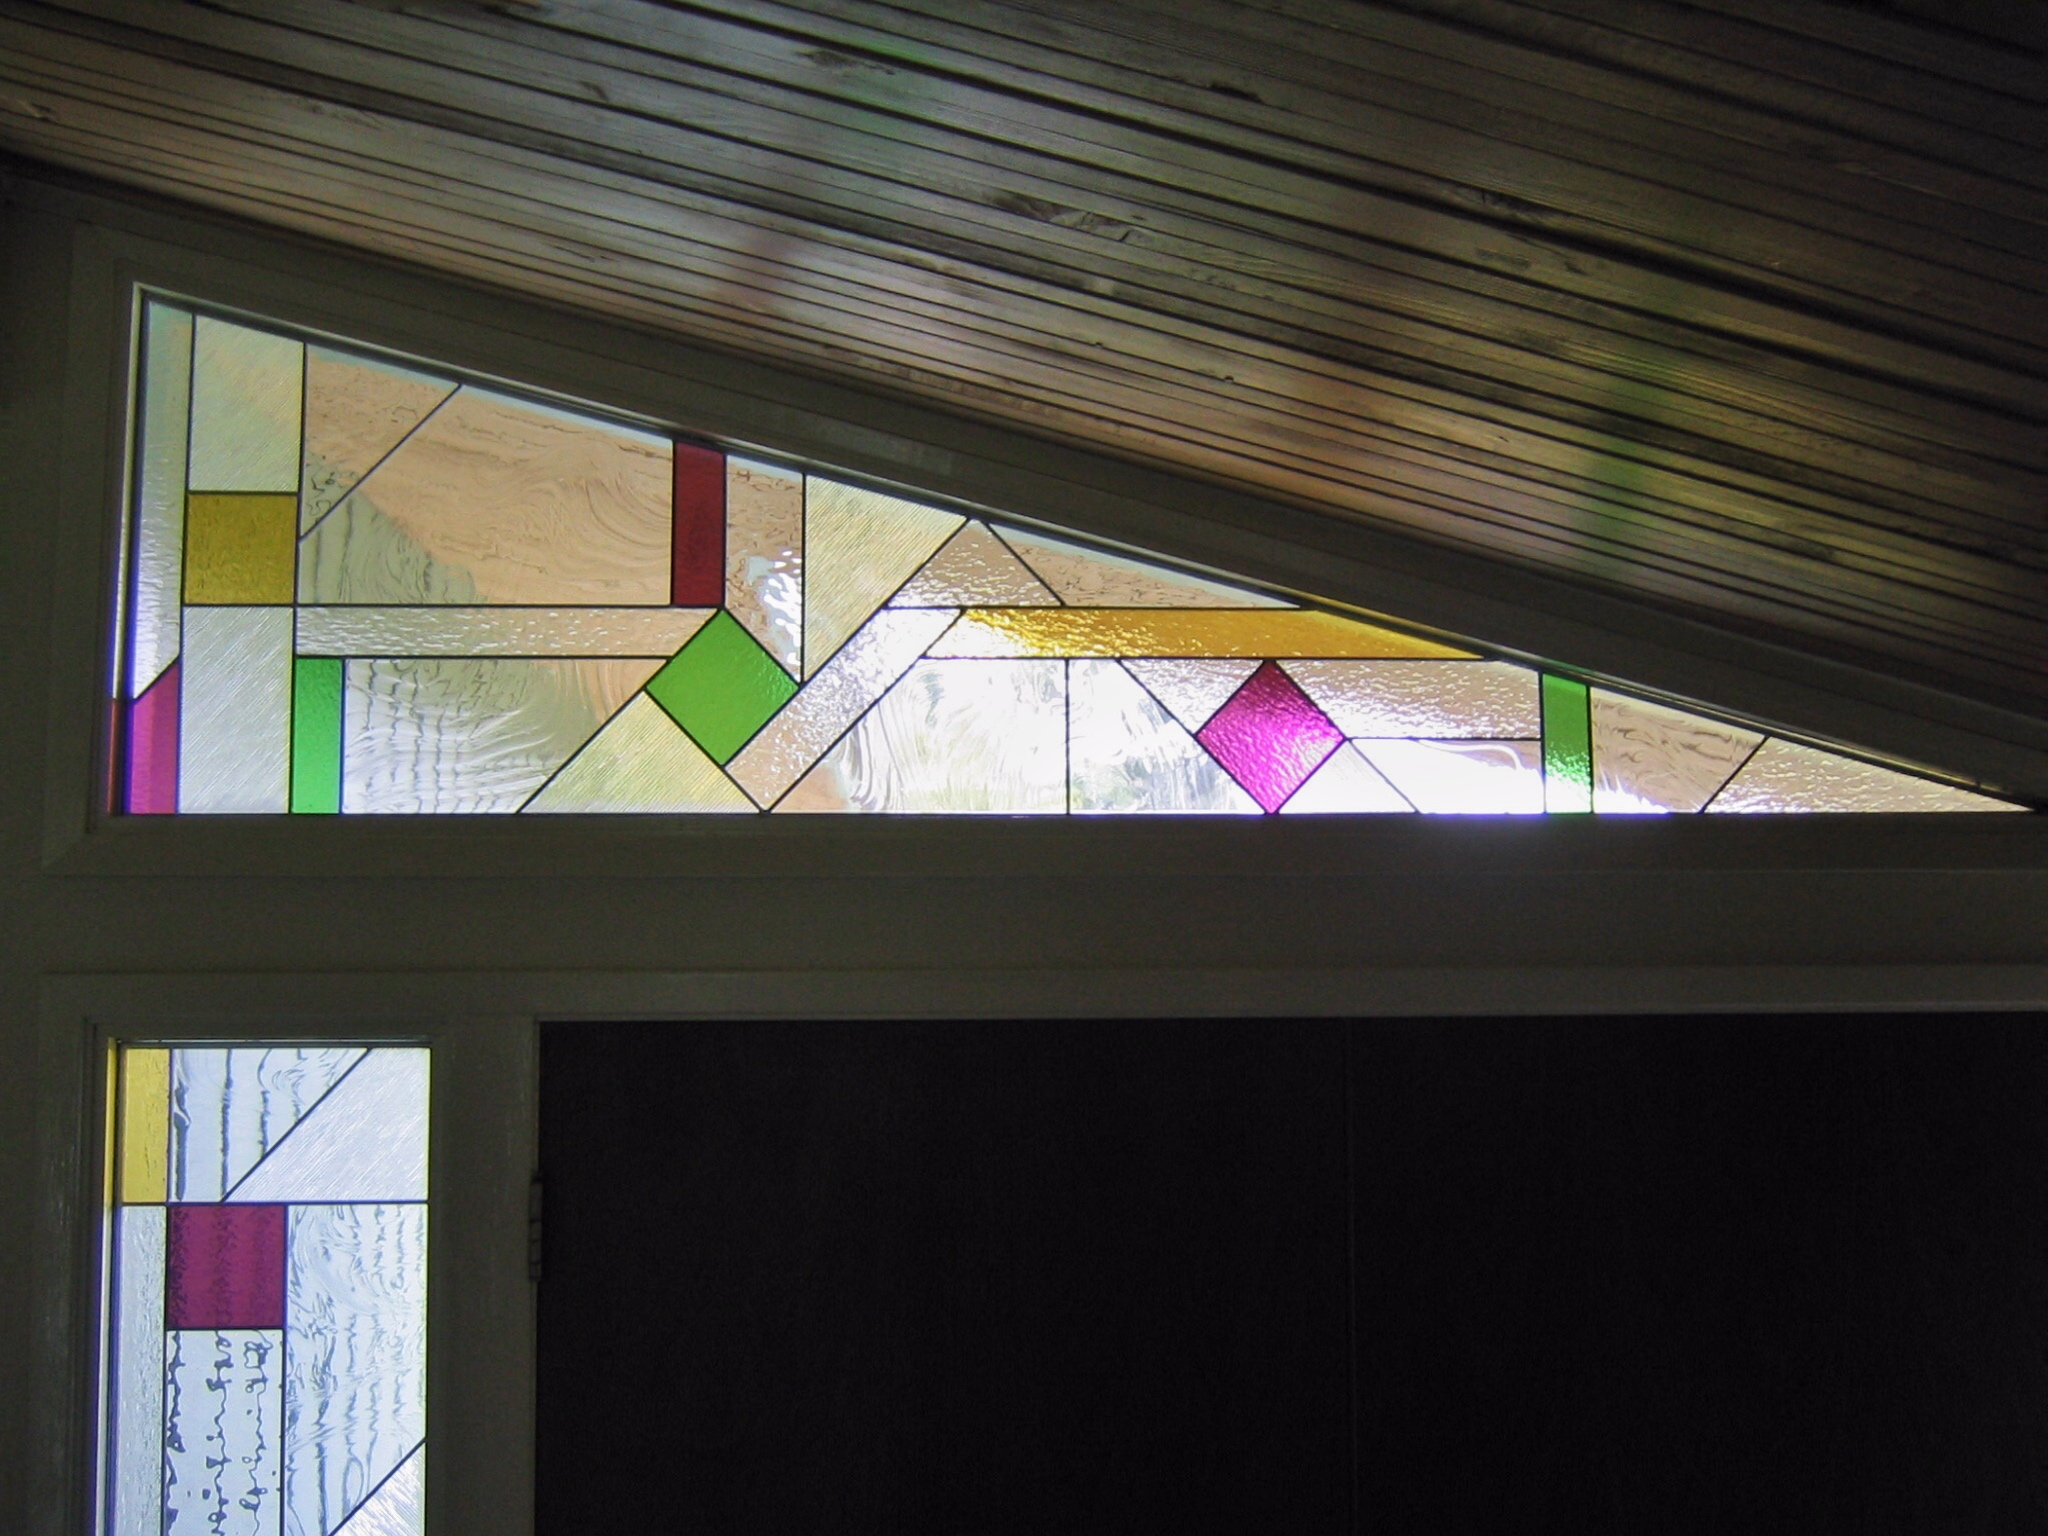 custom stained glass window sidelight insert front entry geometric design art deco midcentury pattern amber purple green clear texture privacy glass legacy glass studios angled transom.jpg